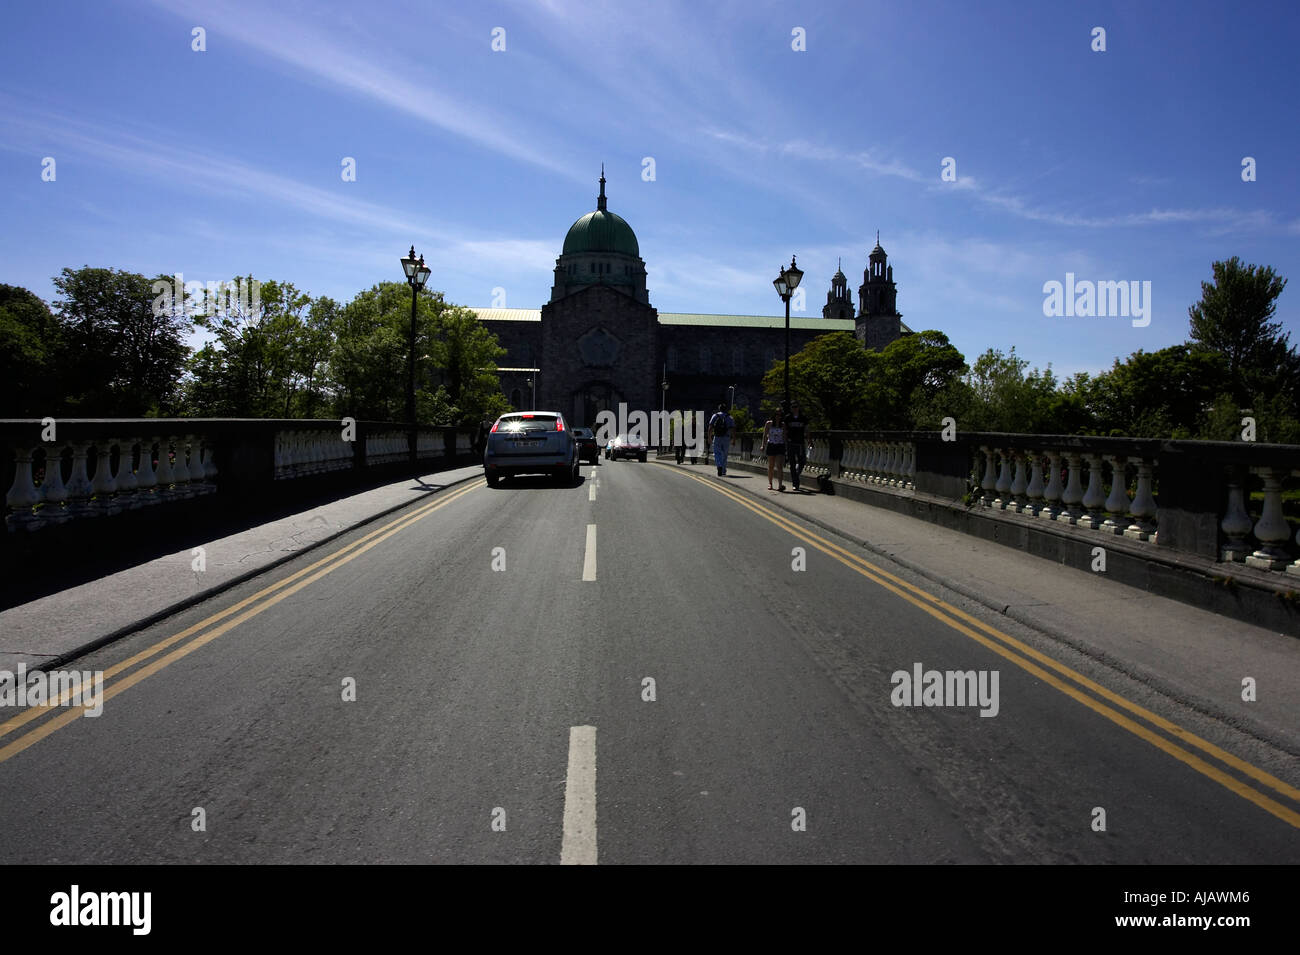 cathedral of our lady assumed into heaven and St Nicholas Galway roman catholic cathedral from road on the salmon weir bridge - Stock Image